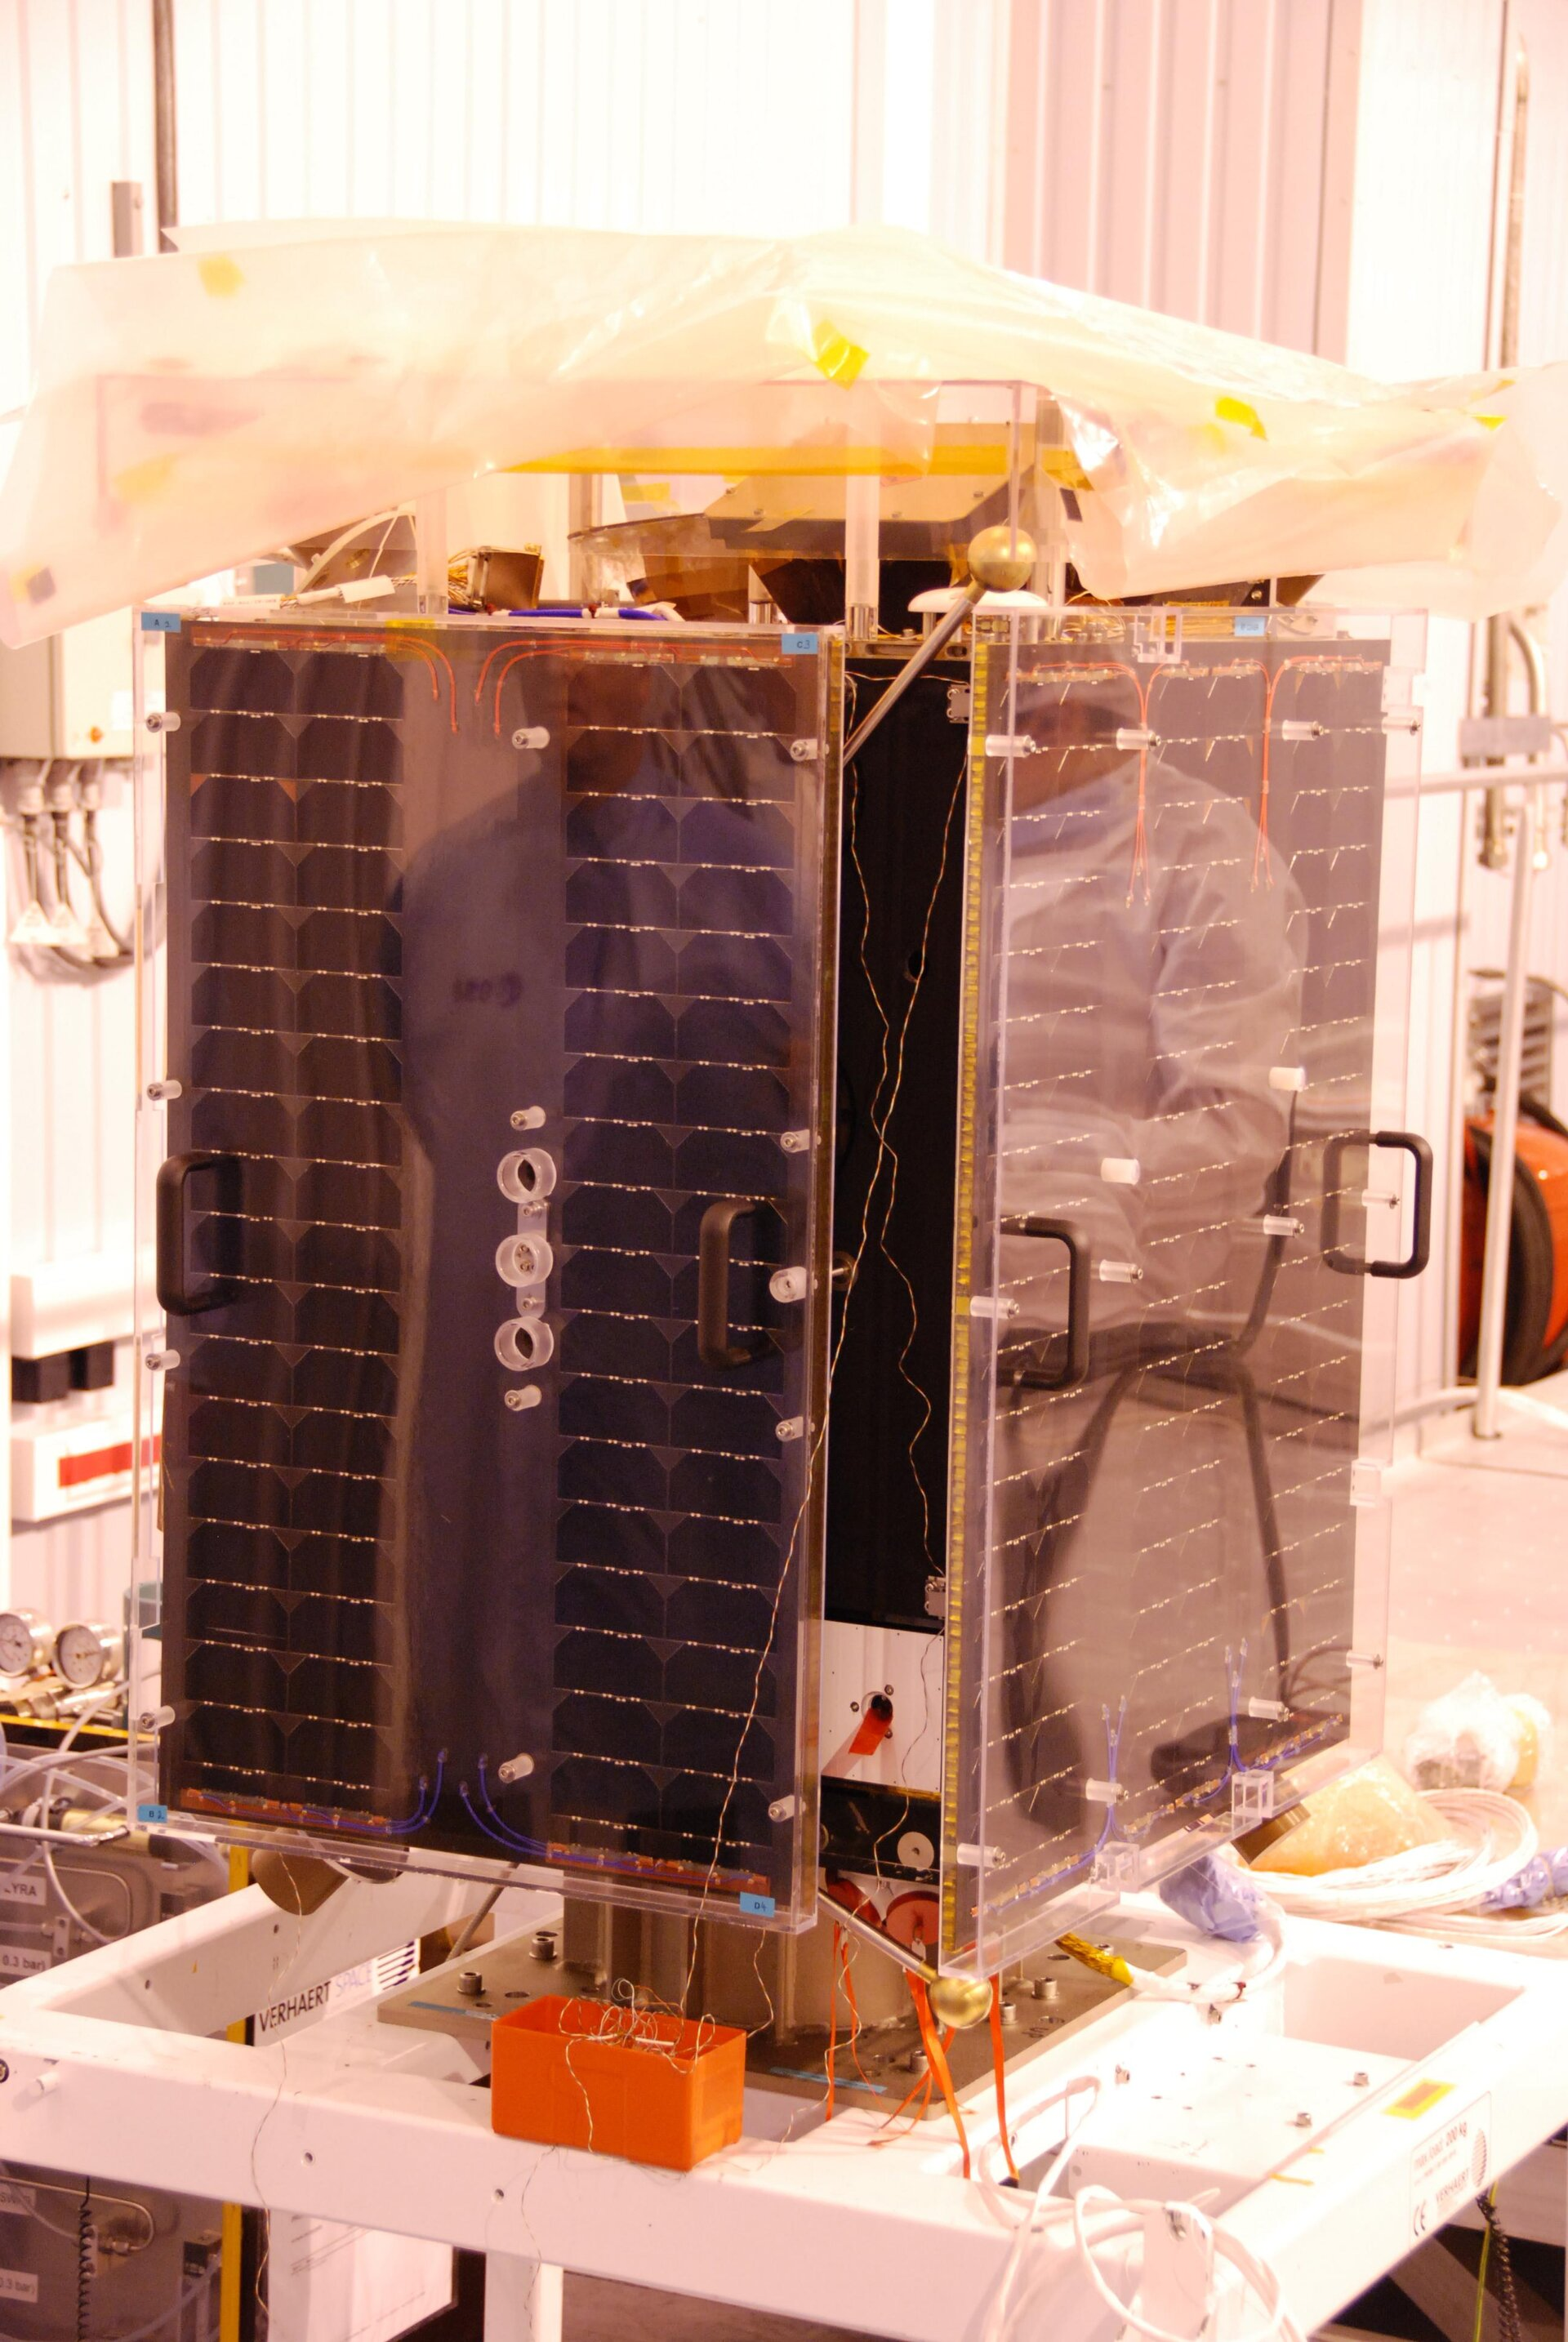 Proba-2 with solar panels mounted